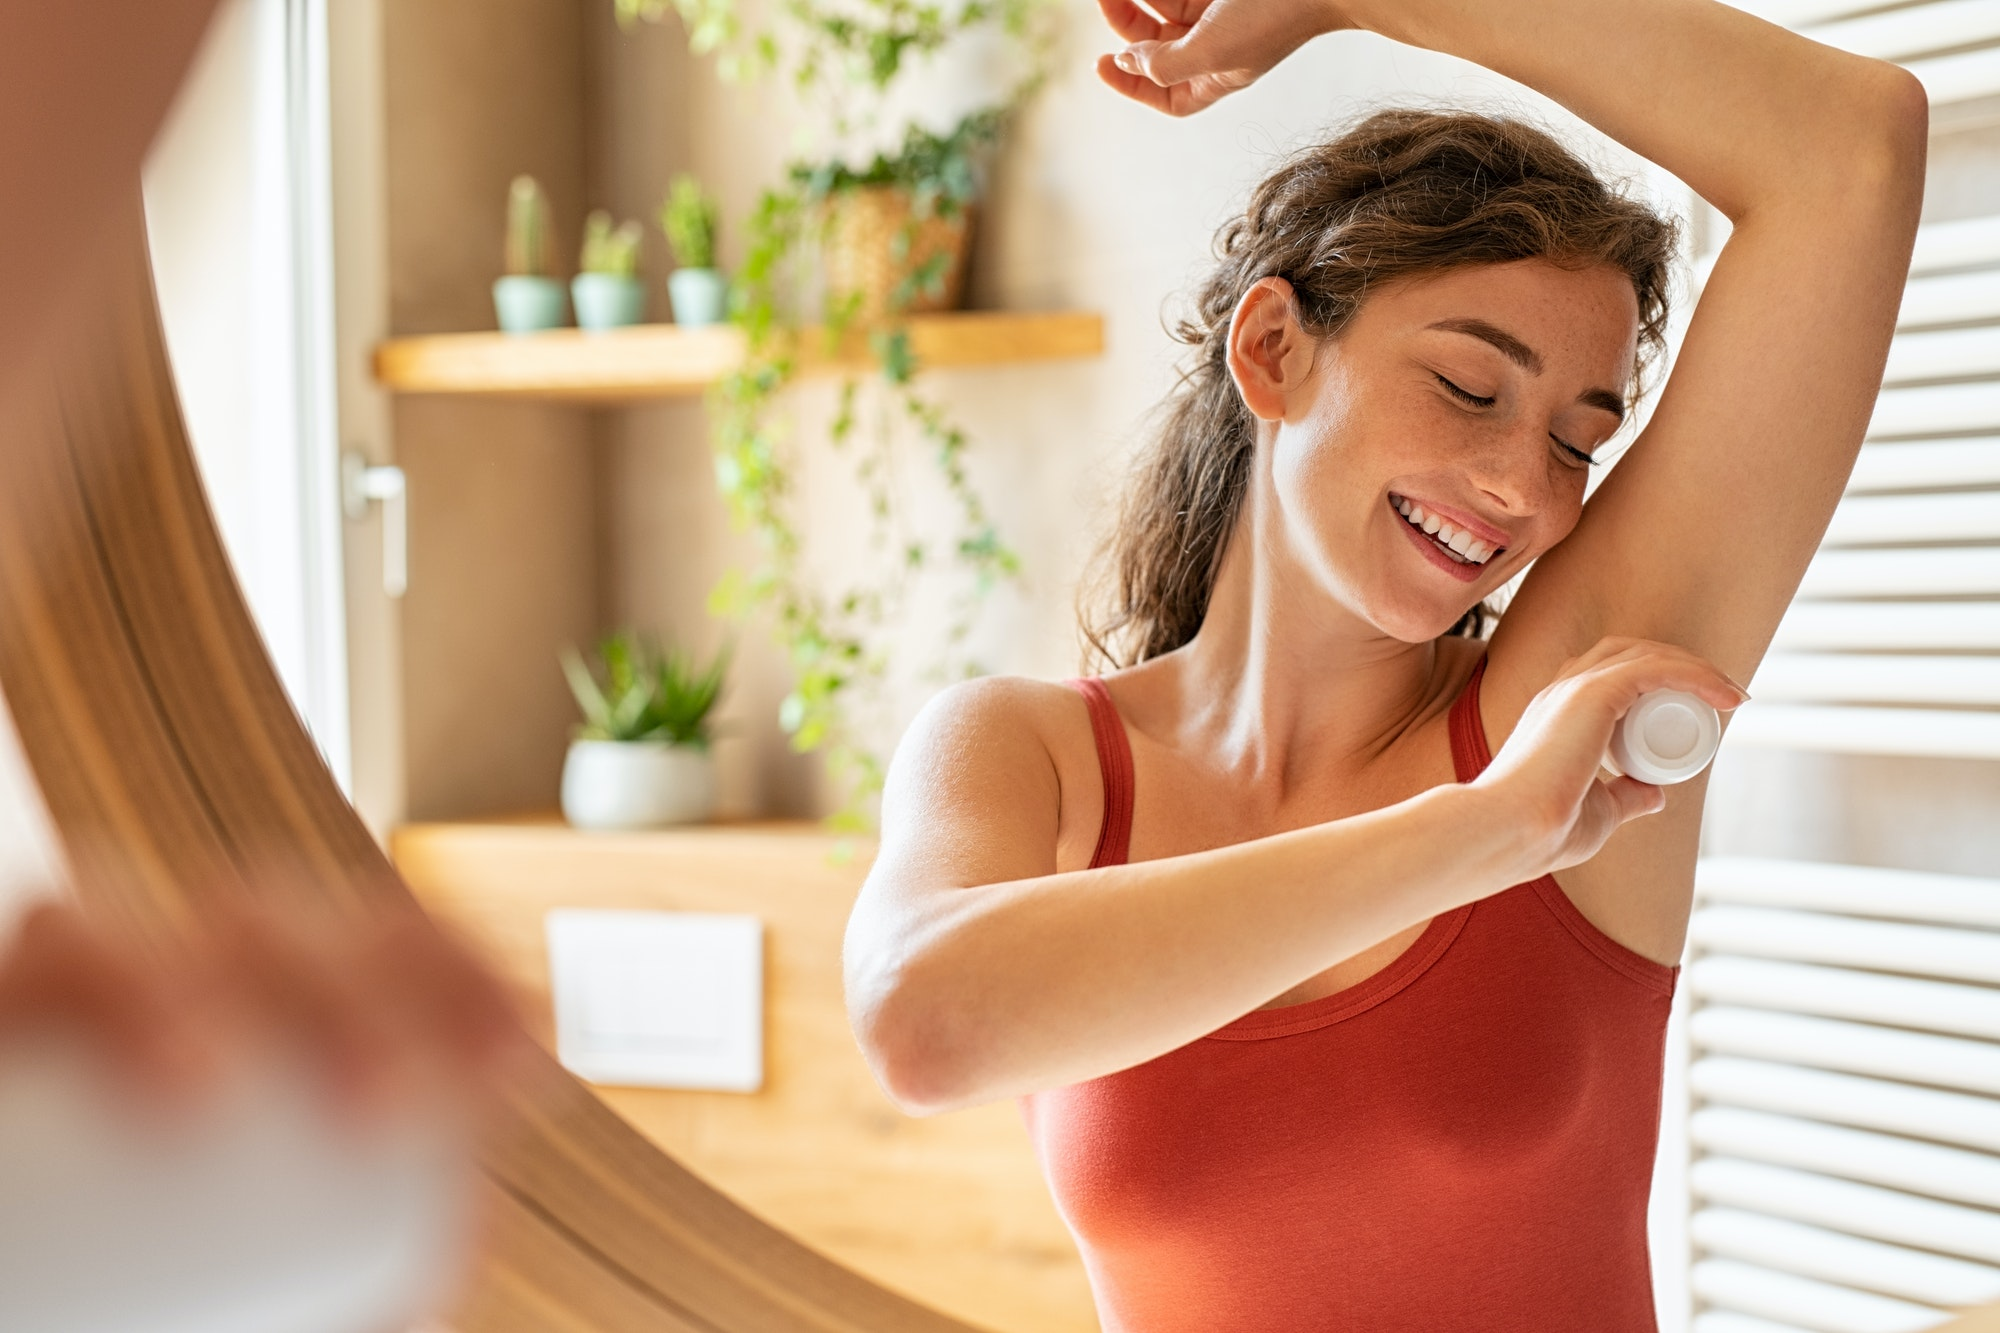 Happy young woman using roll on deodorant